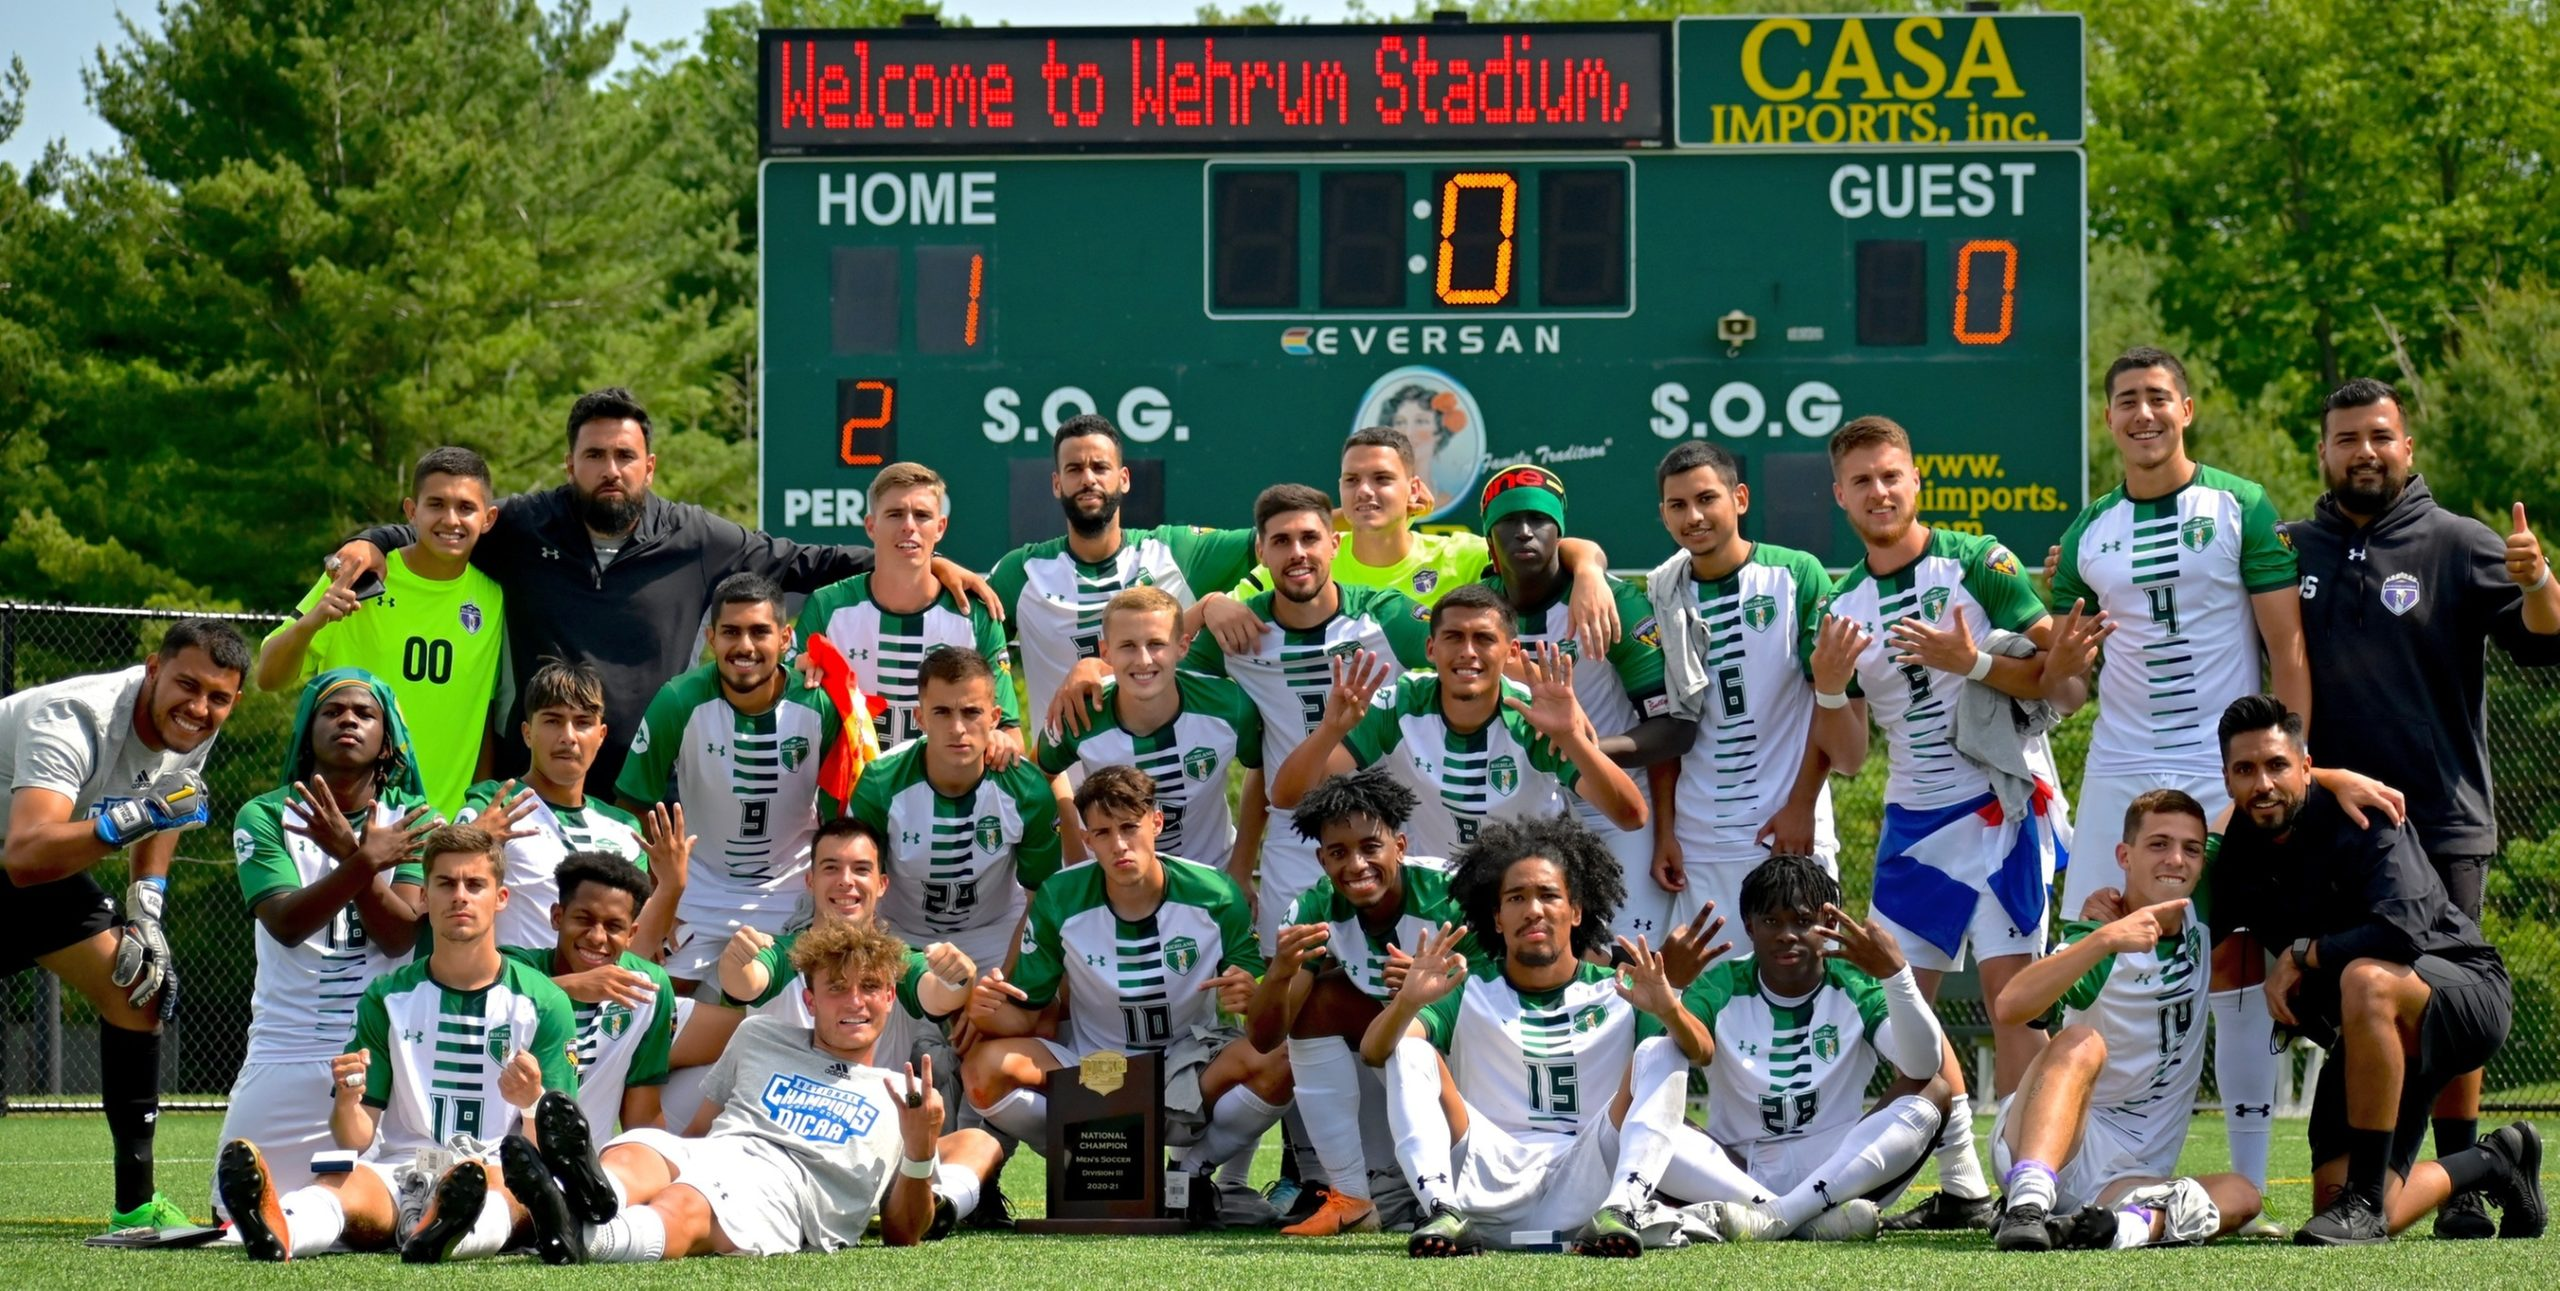 Team photo of the Richland Thunderducks after winning the 2021 national soccer championship